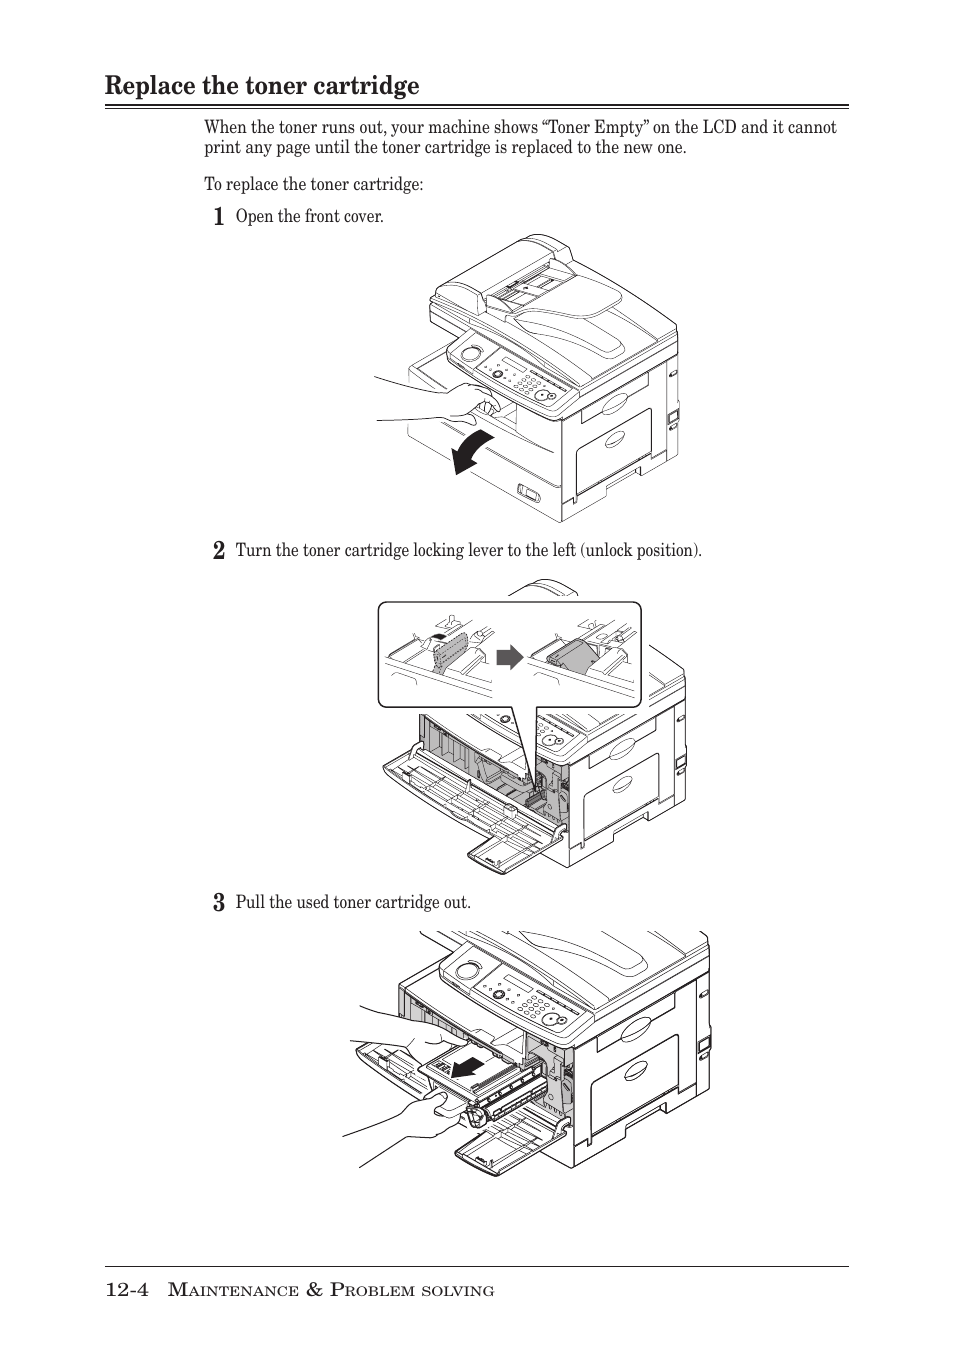 medium resolution of replace the toner cartridge replace the toner cartridge 4 muratec mfx 1950 user manual page 168 198